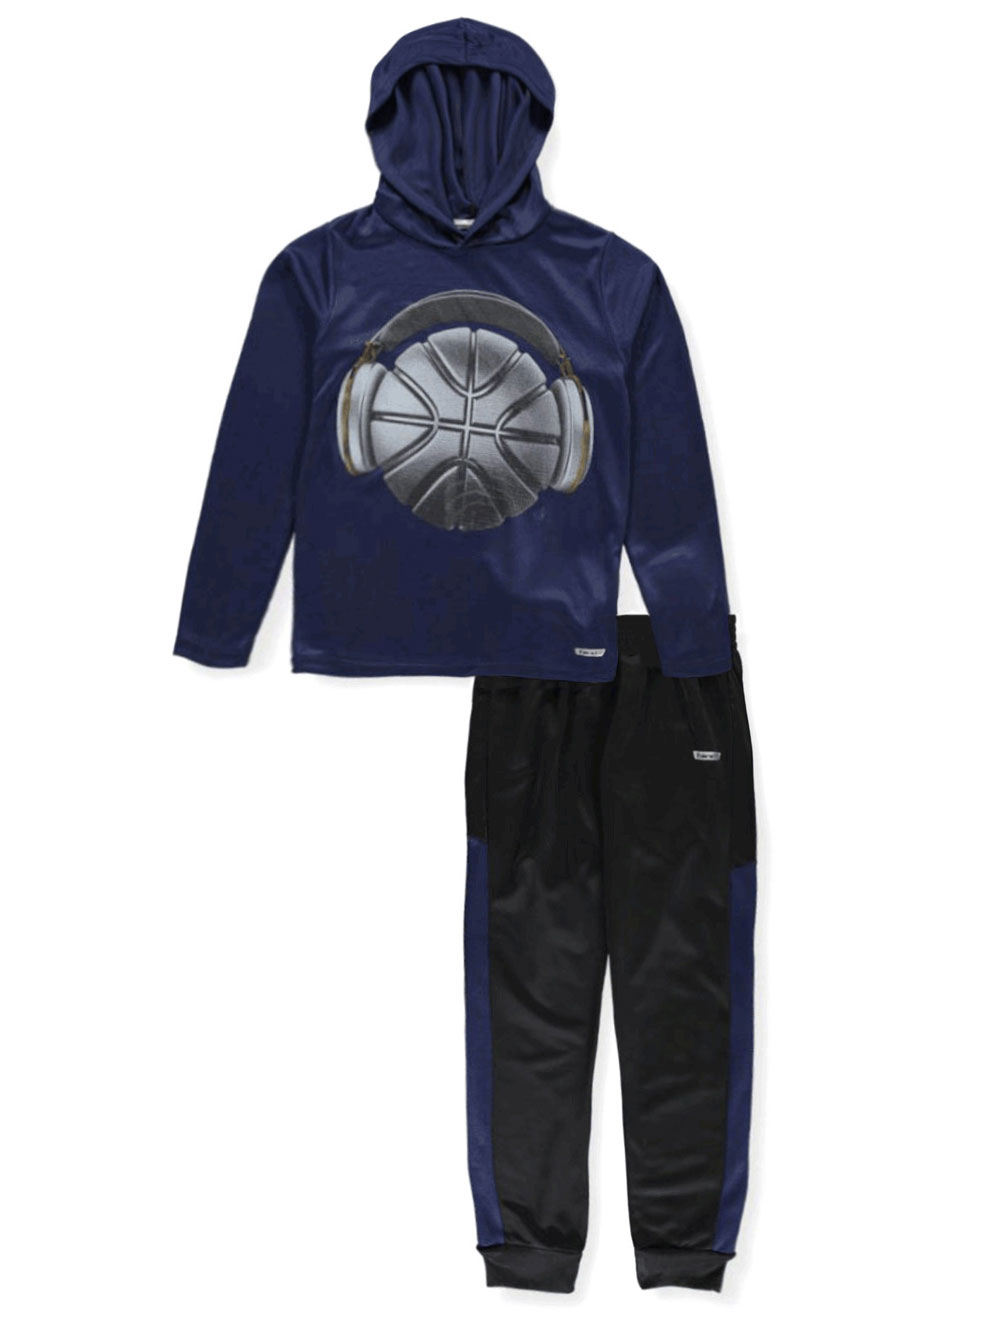 Hind Boys Never Say Never 2-Piece Pants Set Outfit